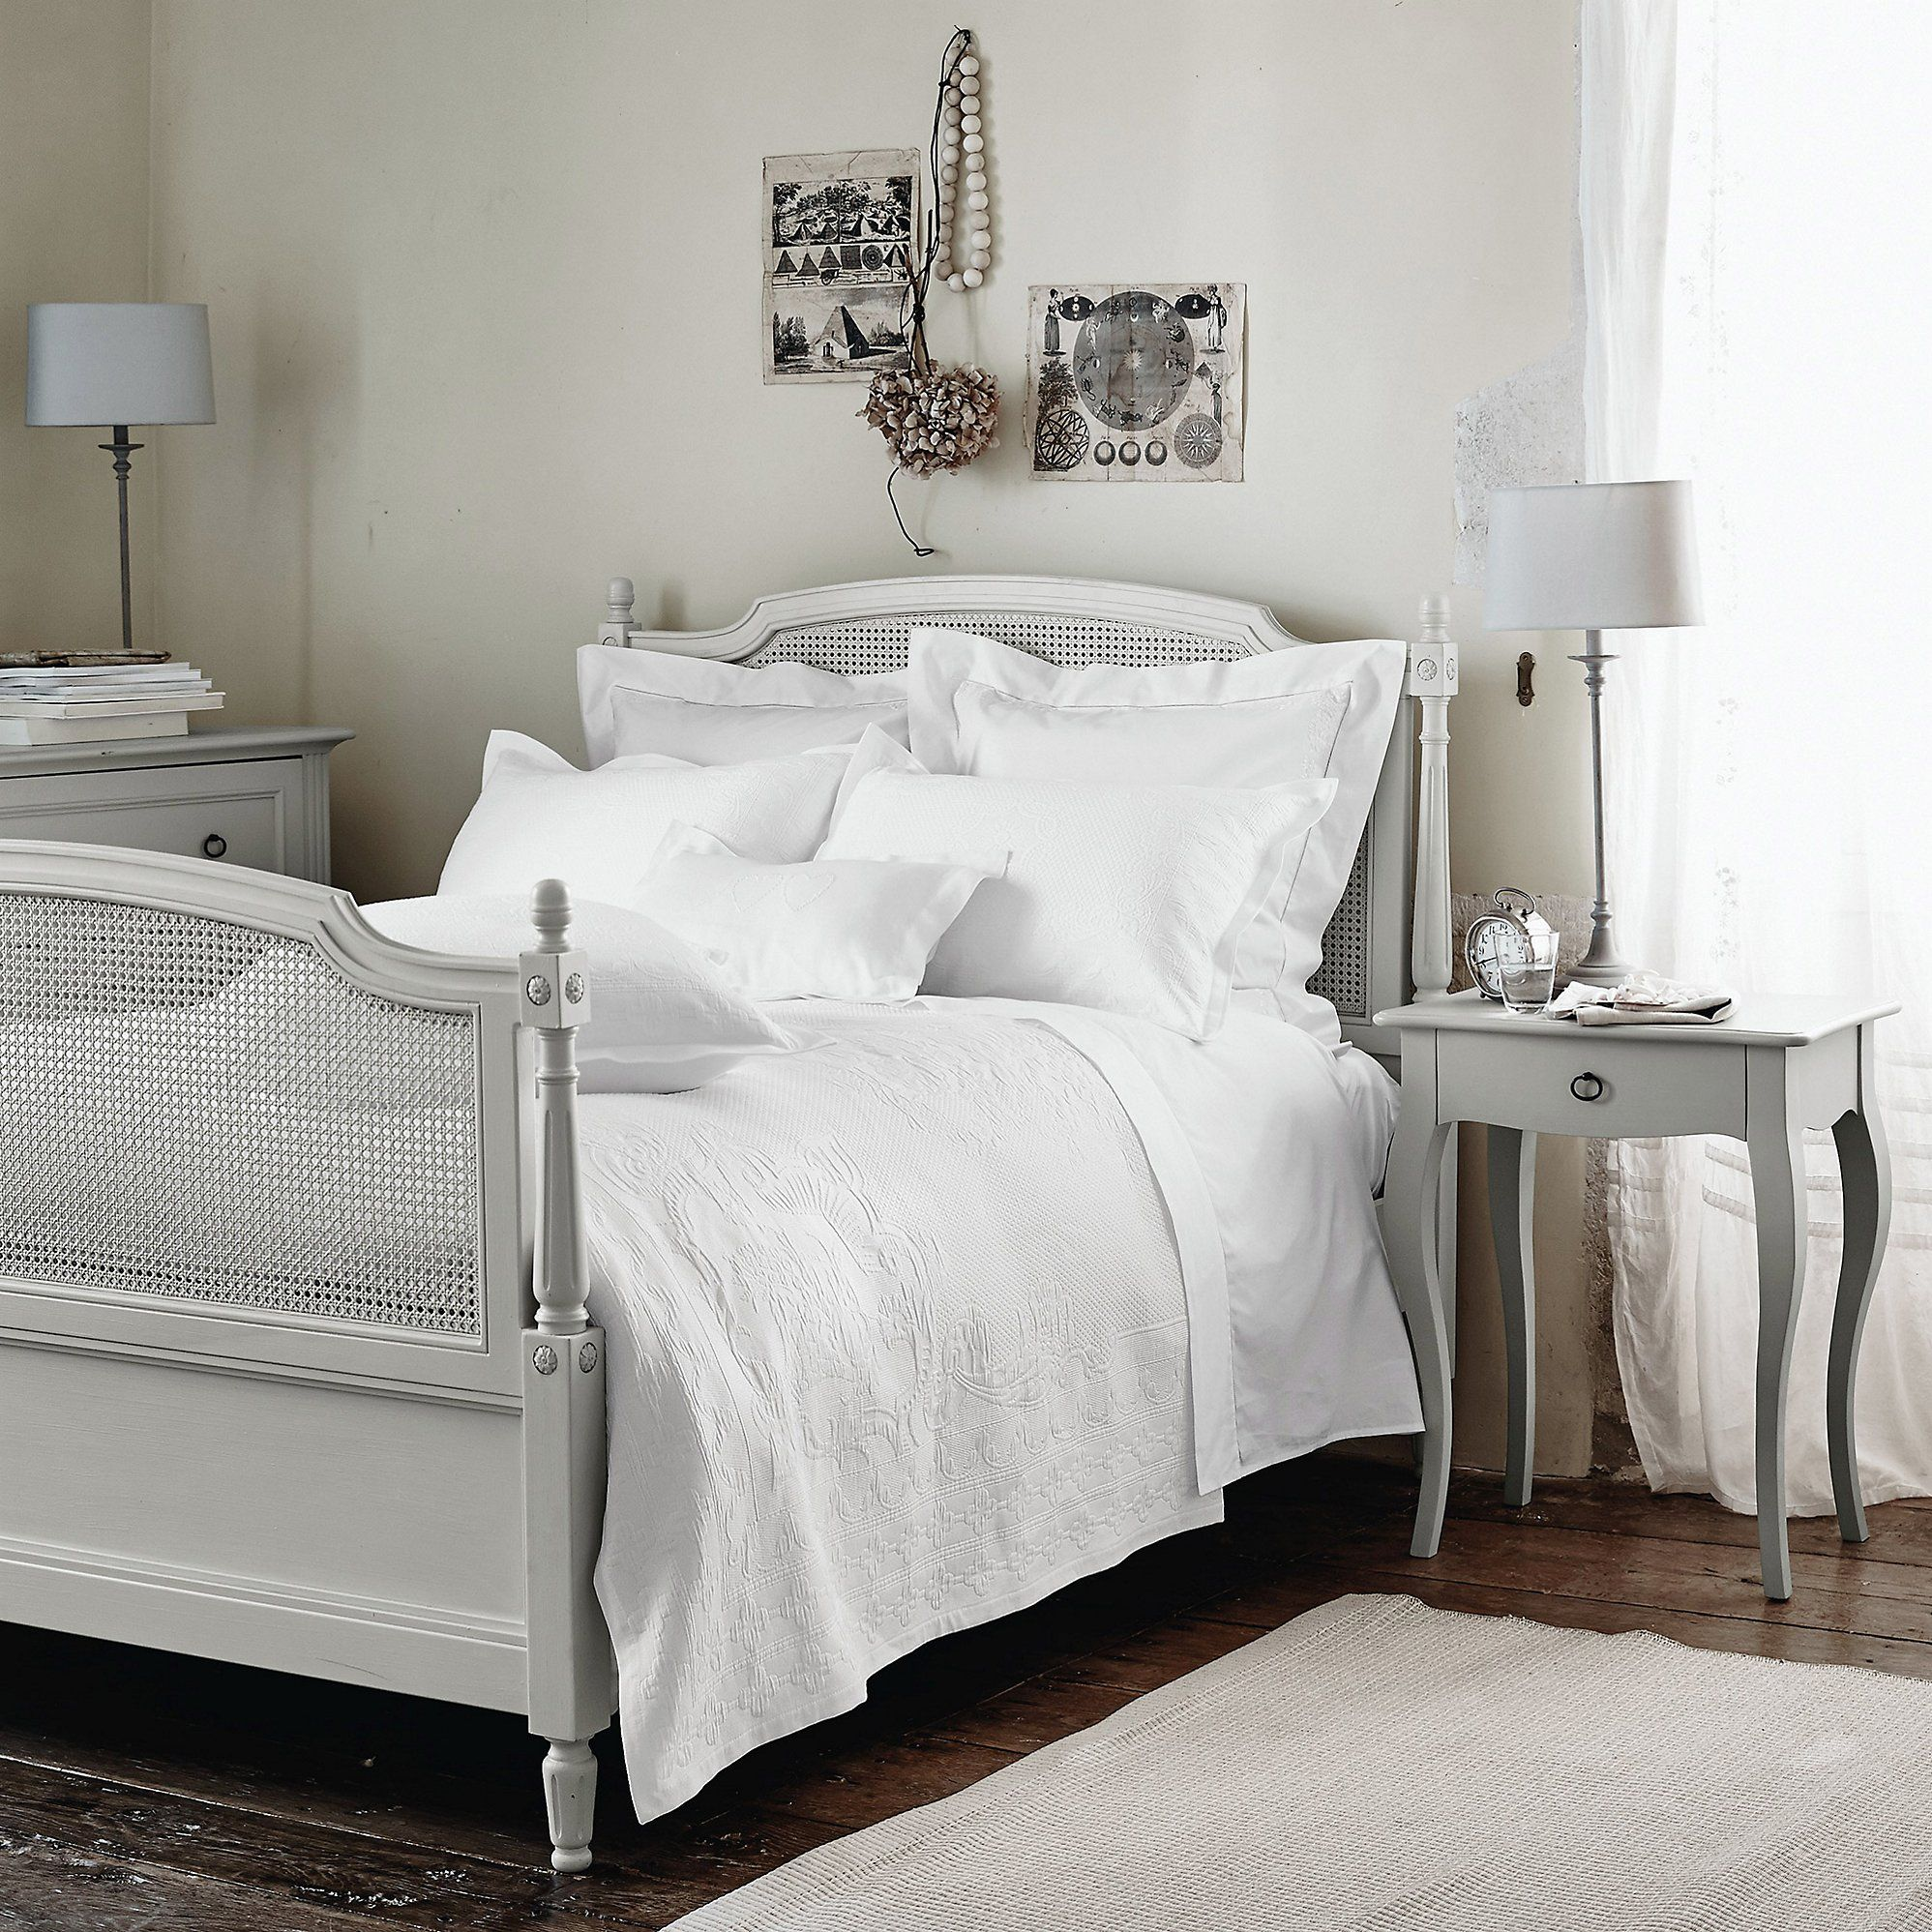 Adeline Bed Linen Collection Bed Linen Collections The